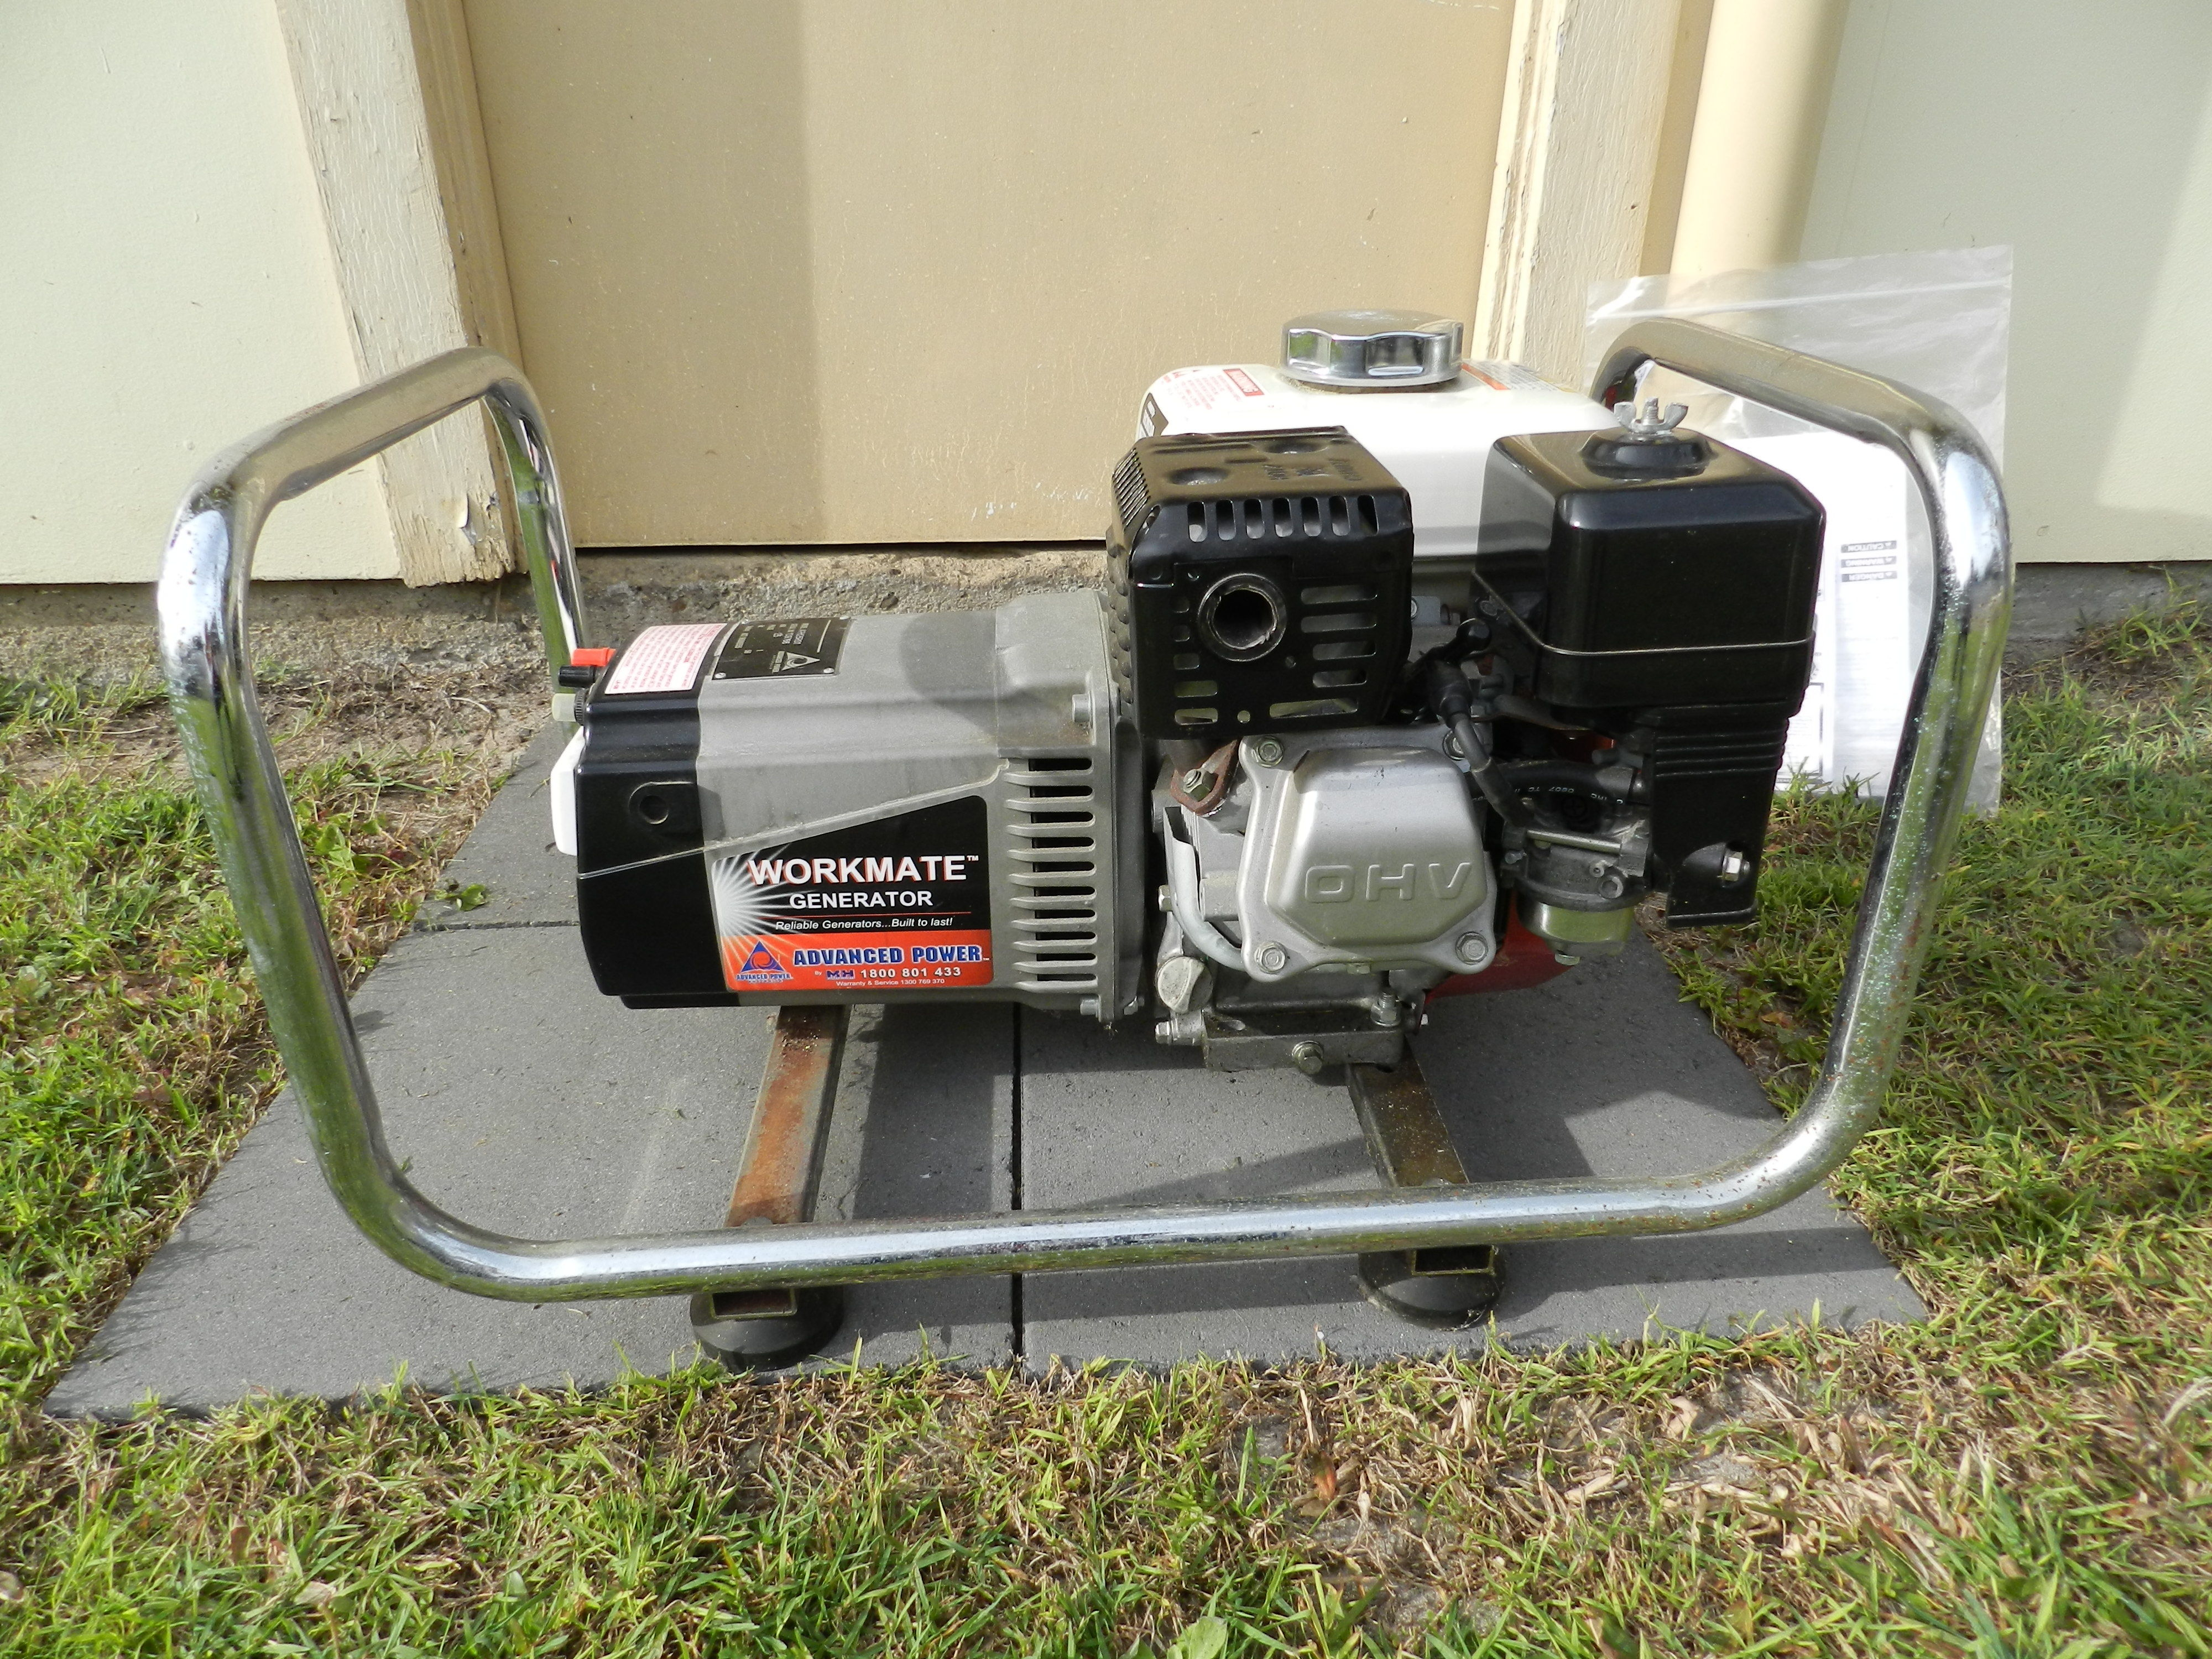 2.5kva Advanced Power Workmate Generator in good condition. Honda Motor. Manuals available. Runs well.